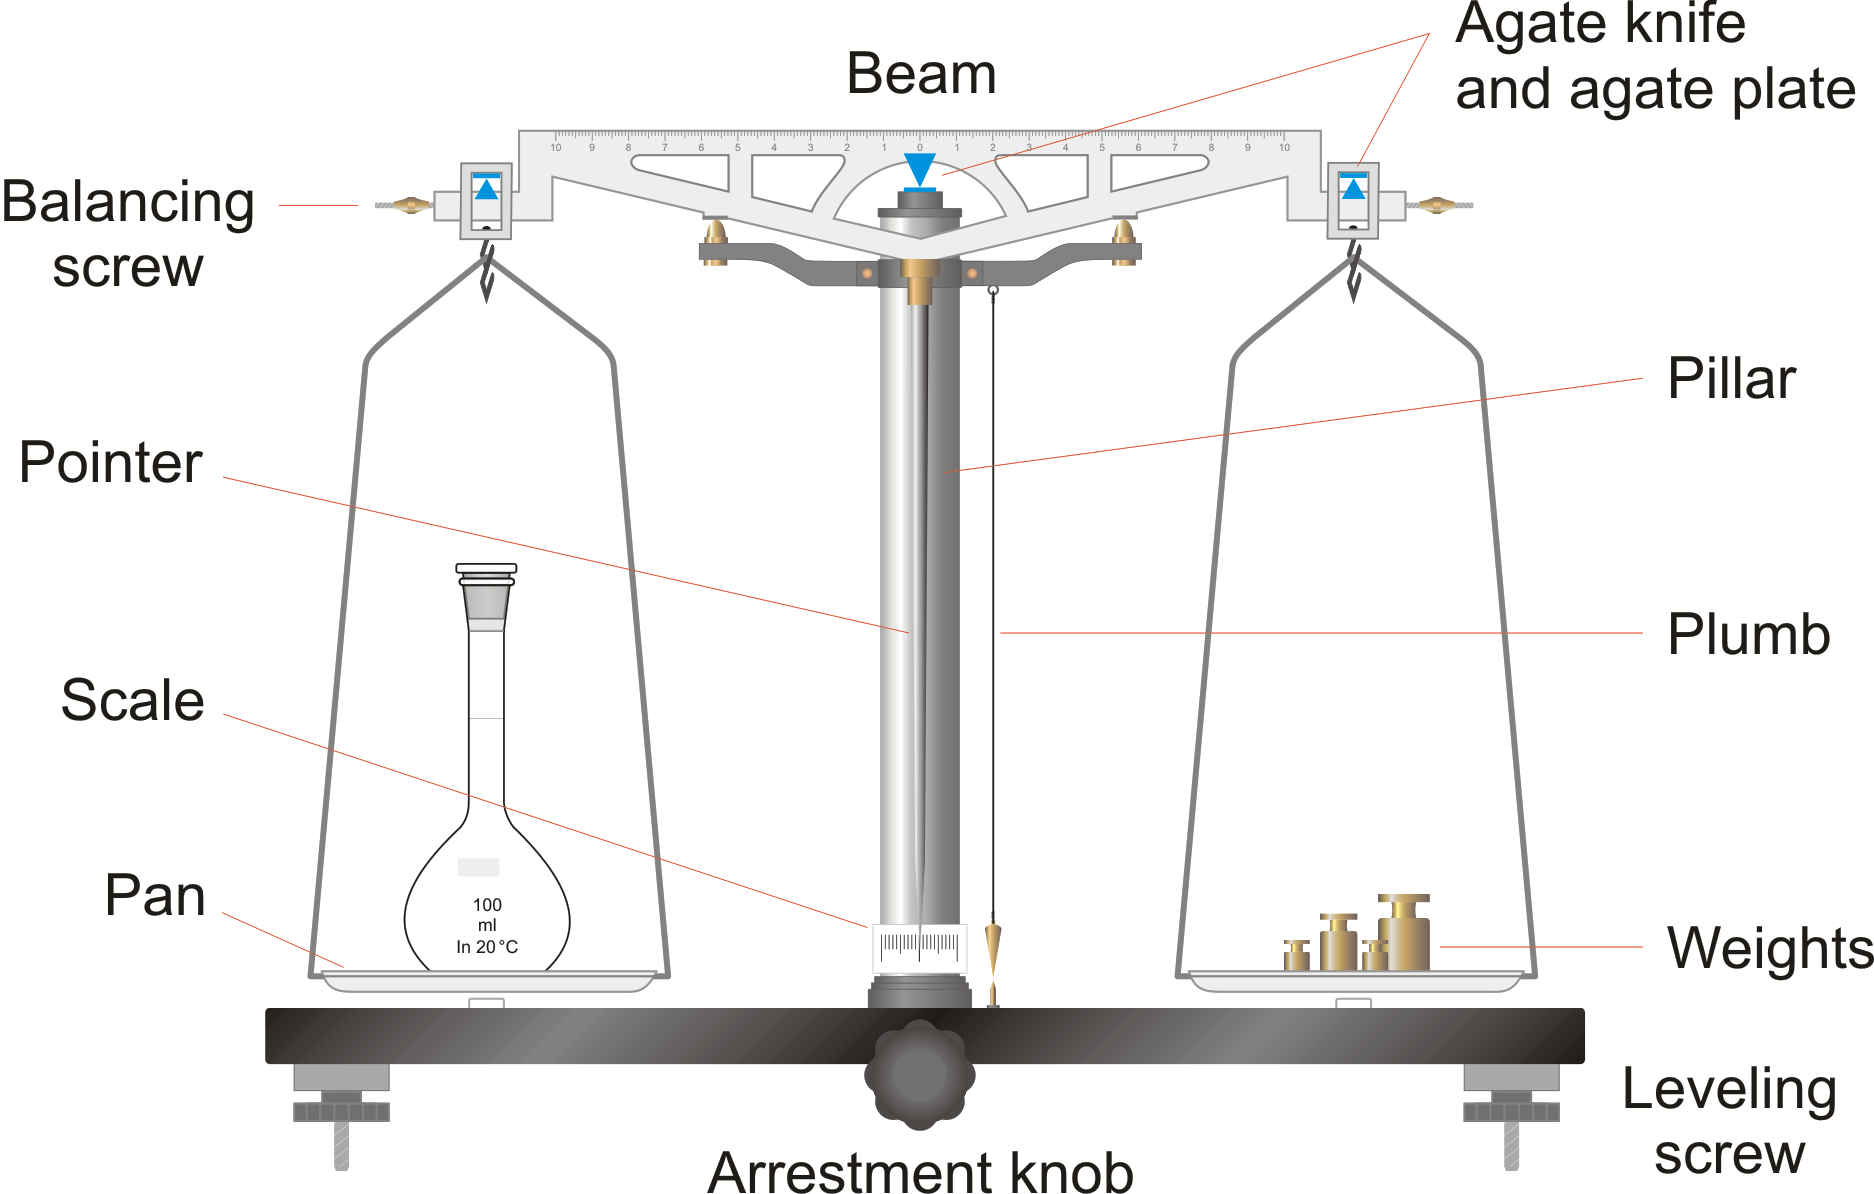 Uneven Balance Scale Beam balance with equal arms